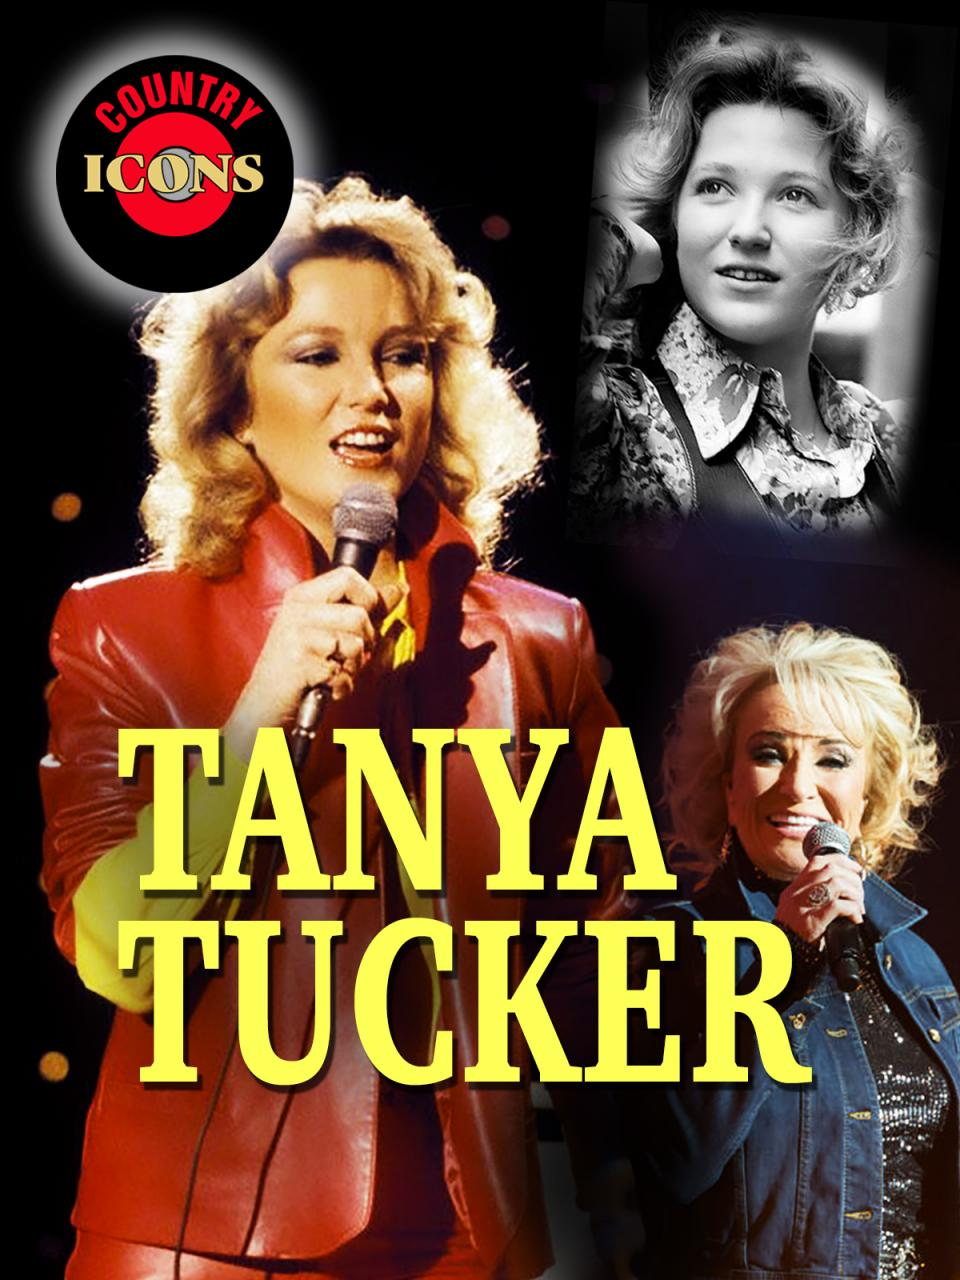 Country Icons: Tanya Tucker